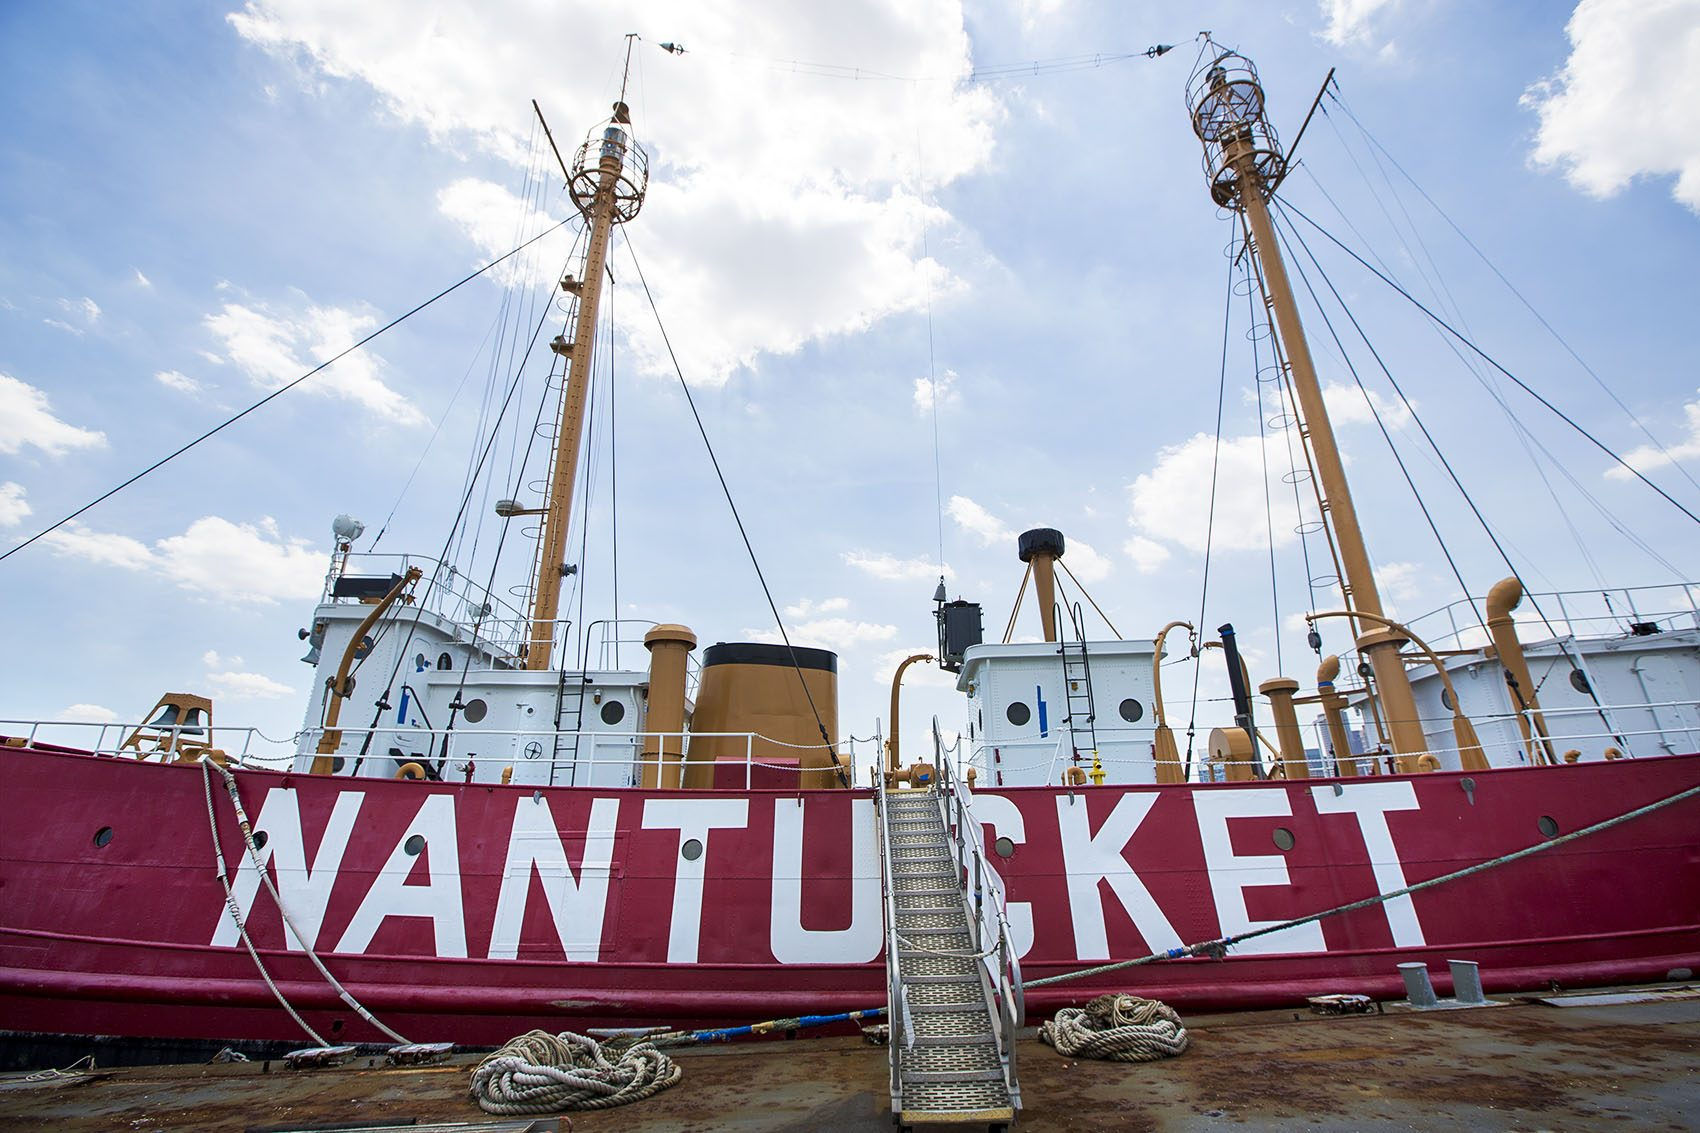 The Nantucket Lightship docked in East Boston. (Jesse Costa/WBUR)